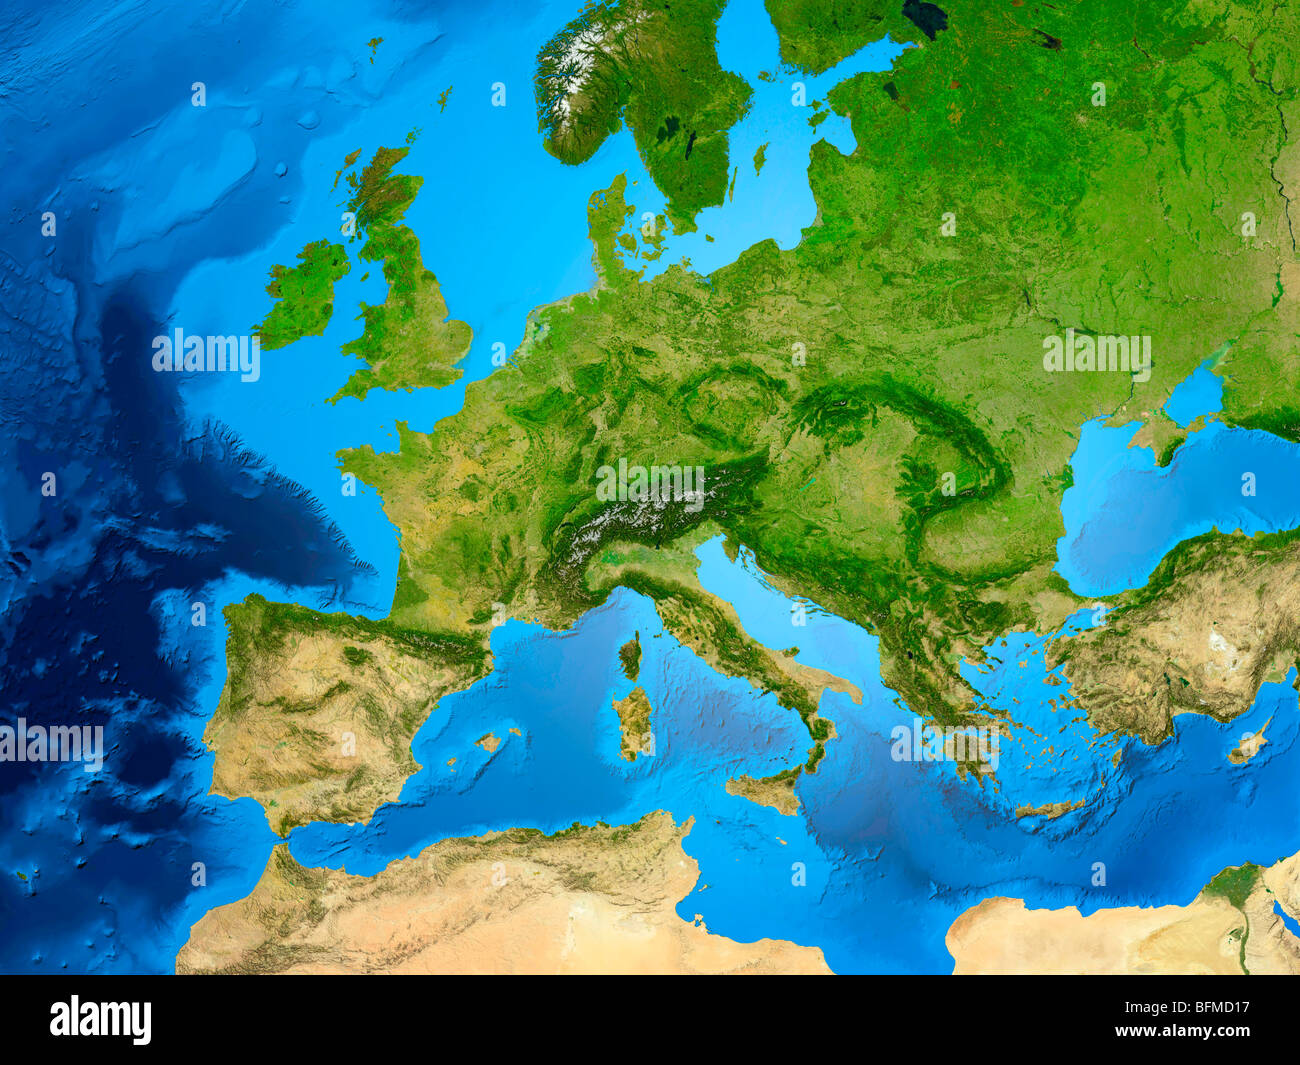 View of the Earth globe from space showing European continent - Stock Image